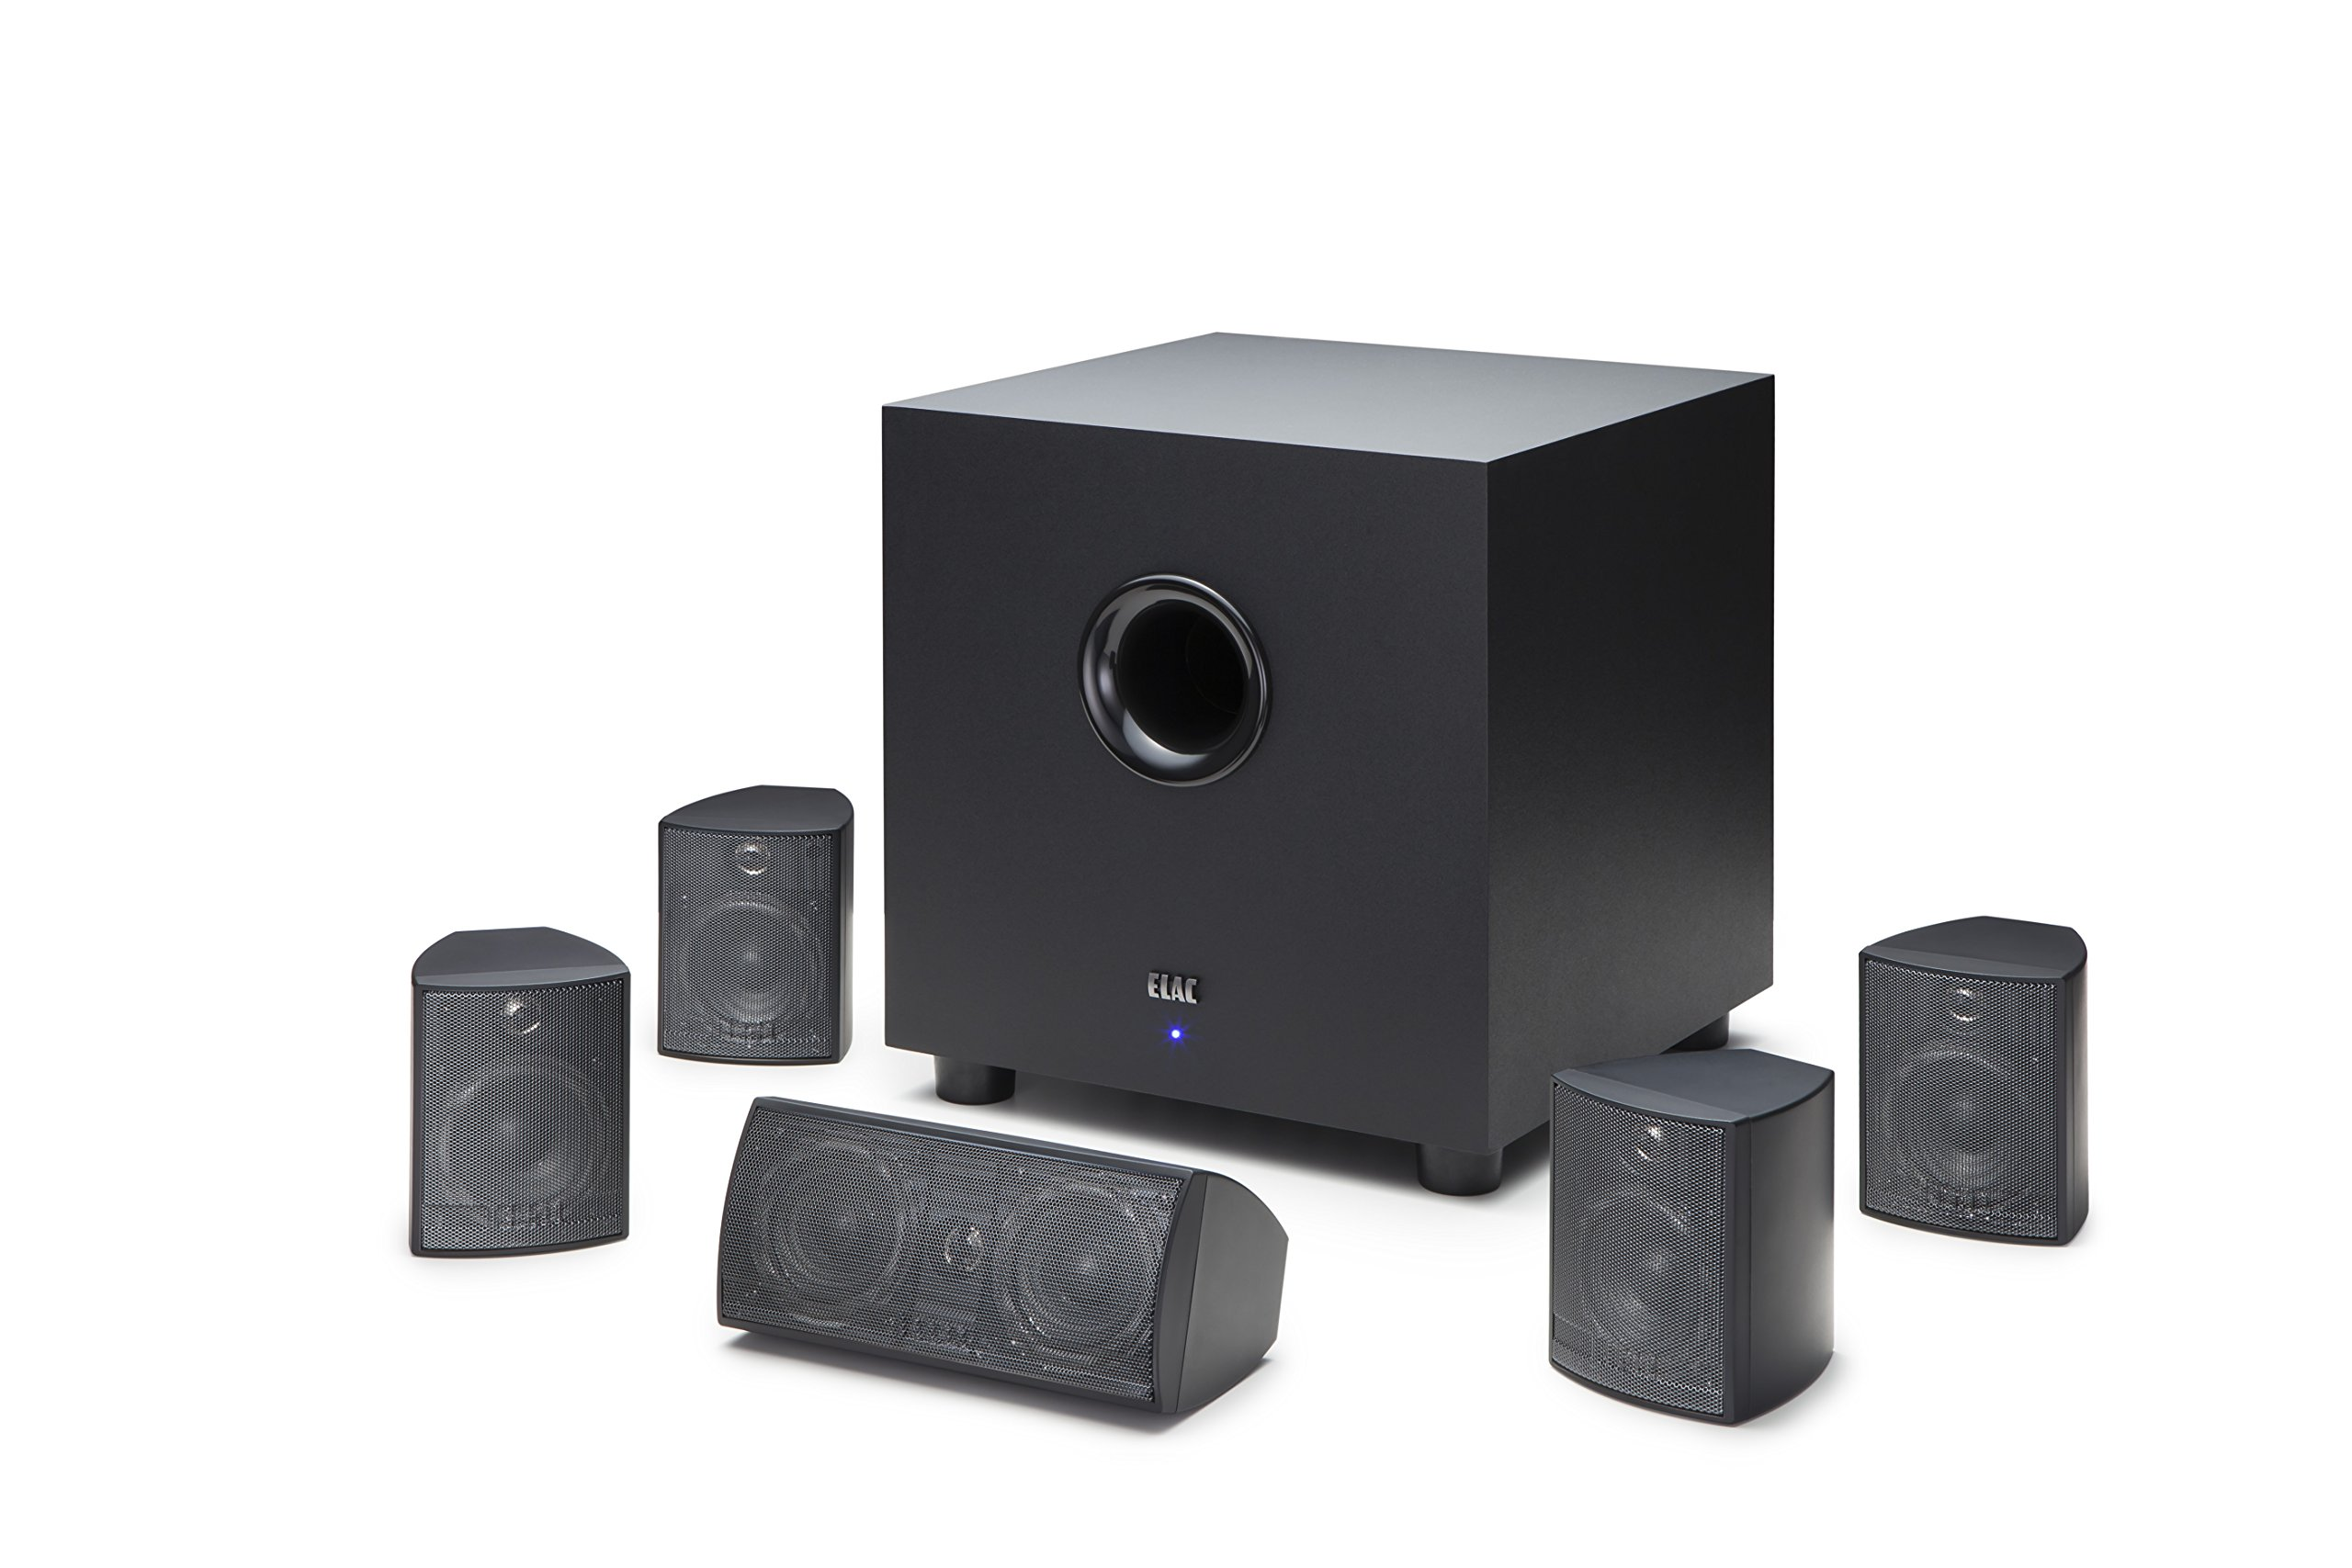 ELAC Cinema 5 Home Theater 5.1 Channel Speaker System (HT-C131W-K) by Elac